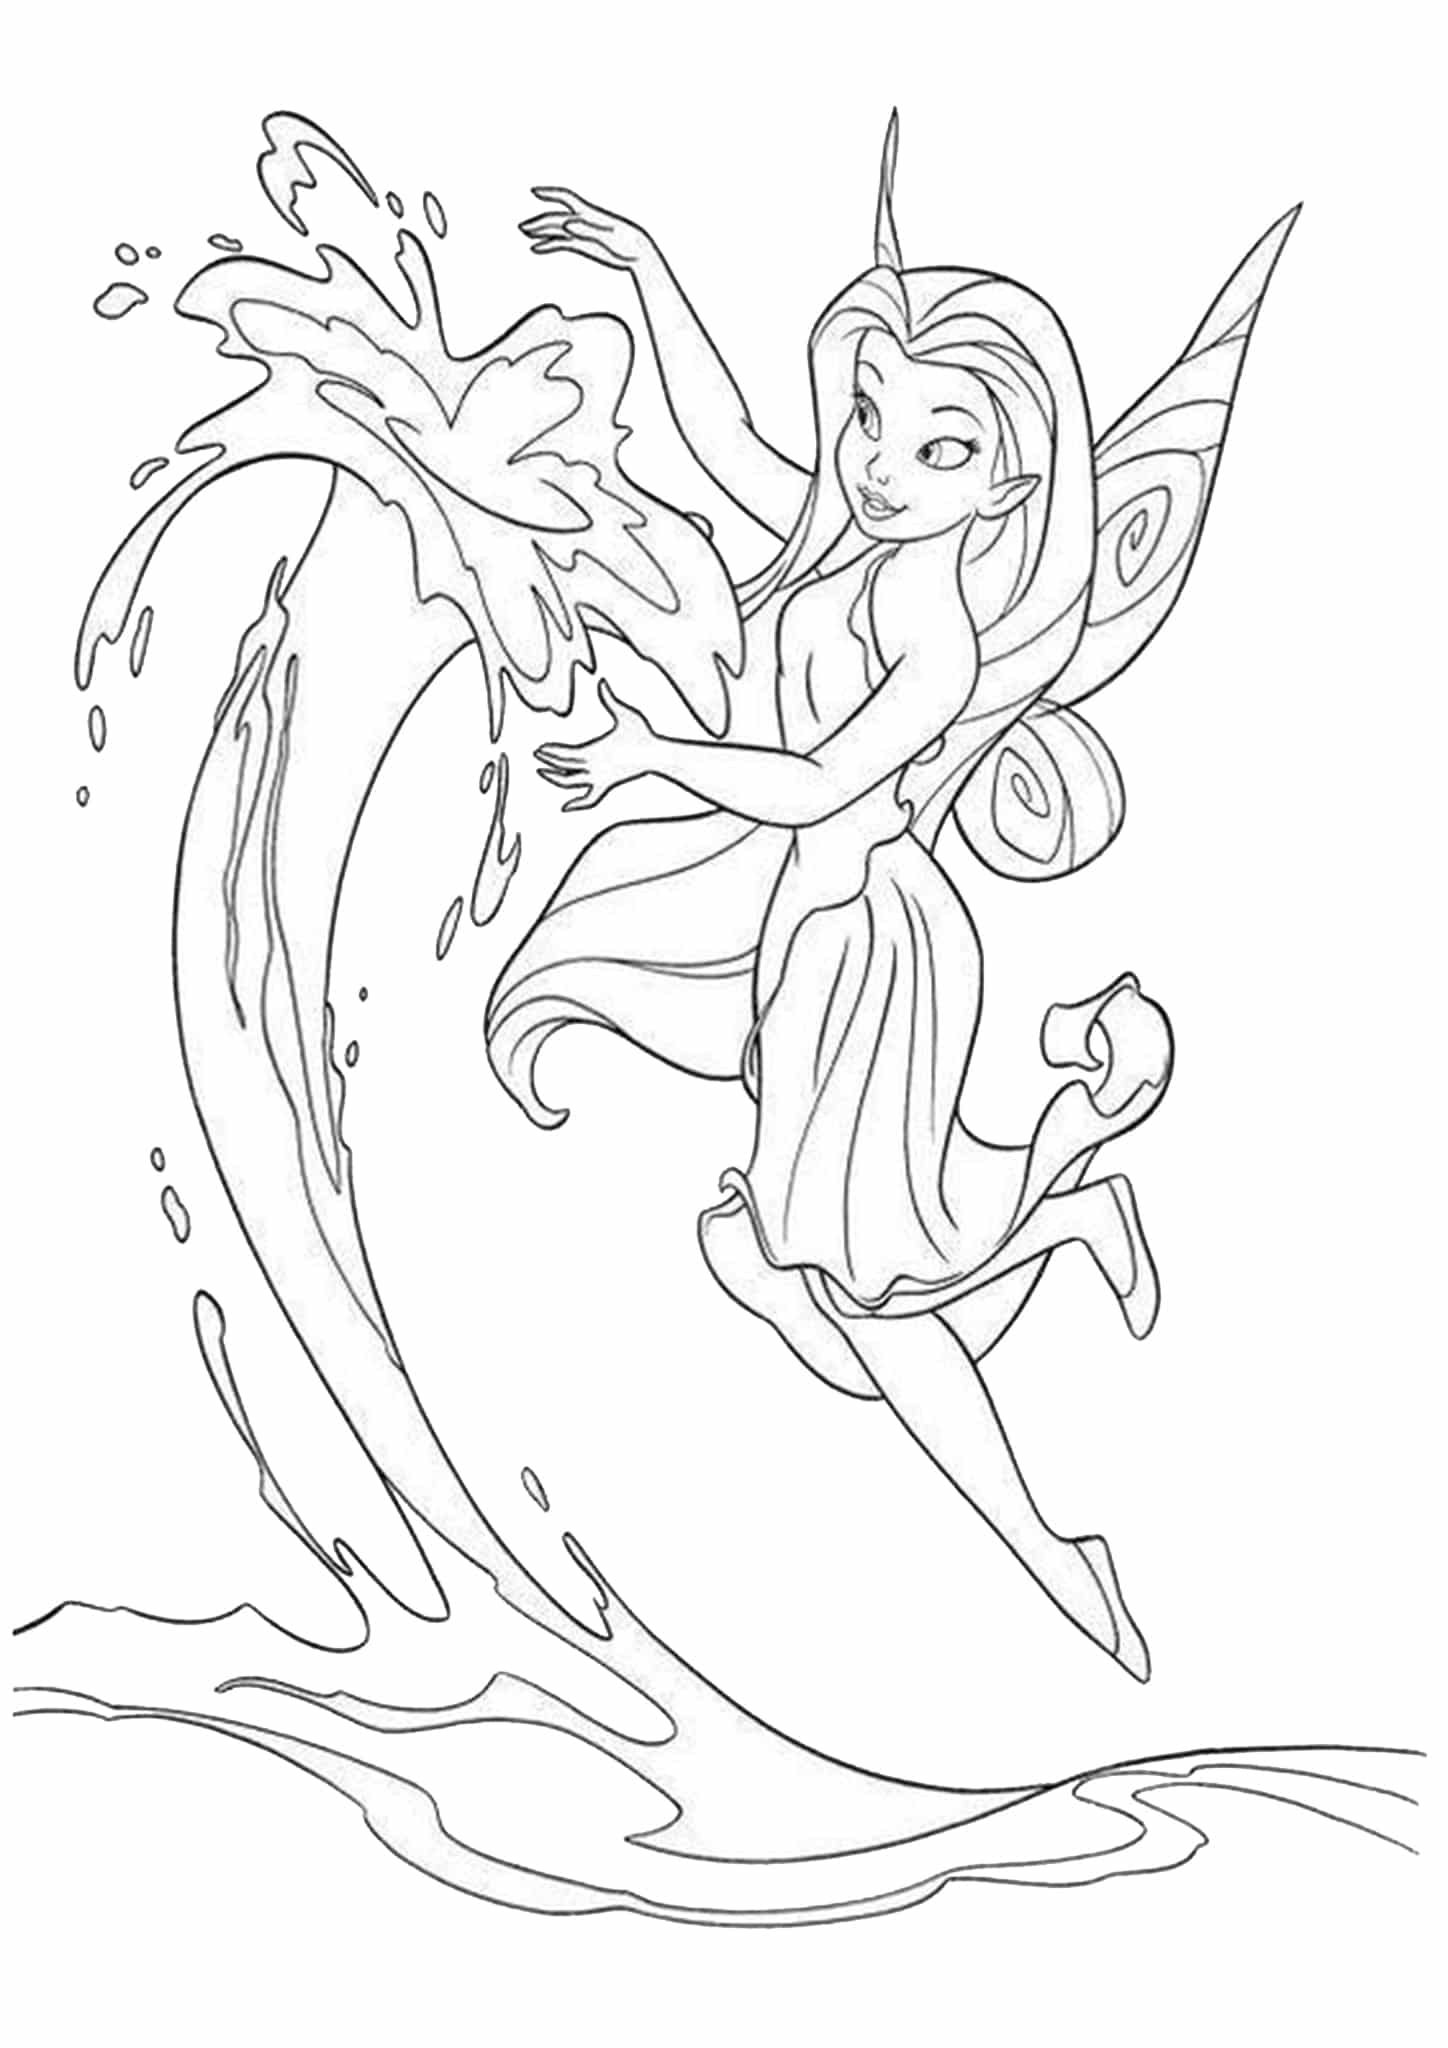 Free Easy To Print Fairy Coloring Pages In 2021 Tinkerbell Coloring Pages Fairy Coloring Pages Disney Coloring Pages